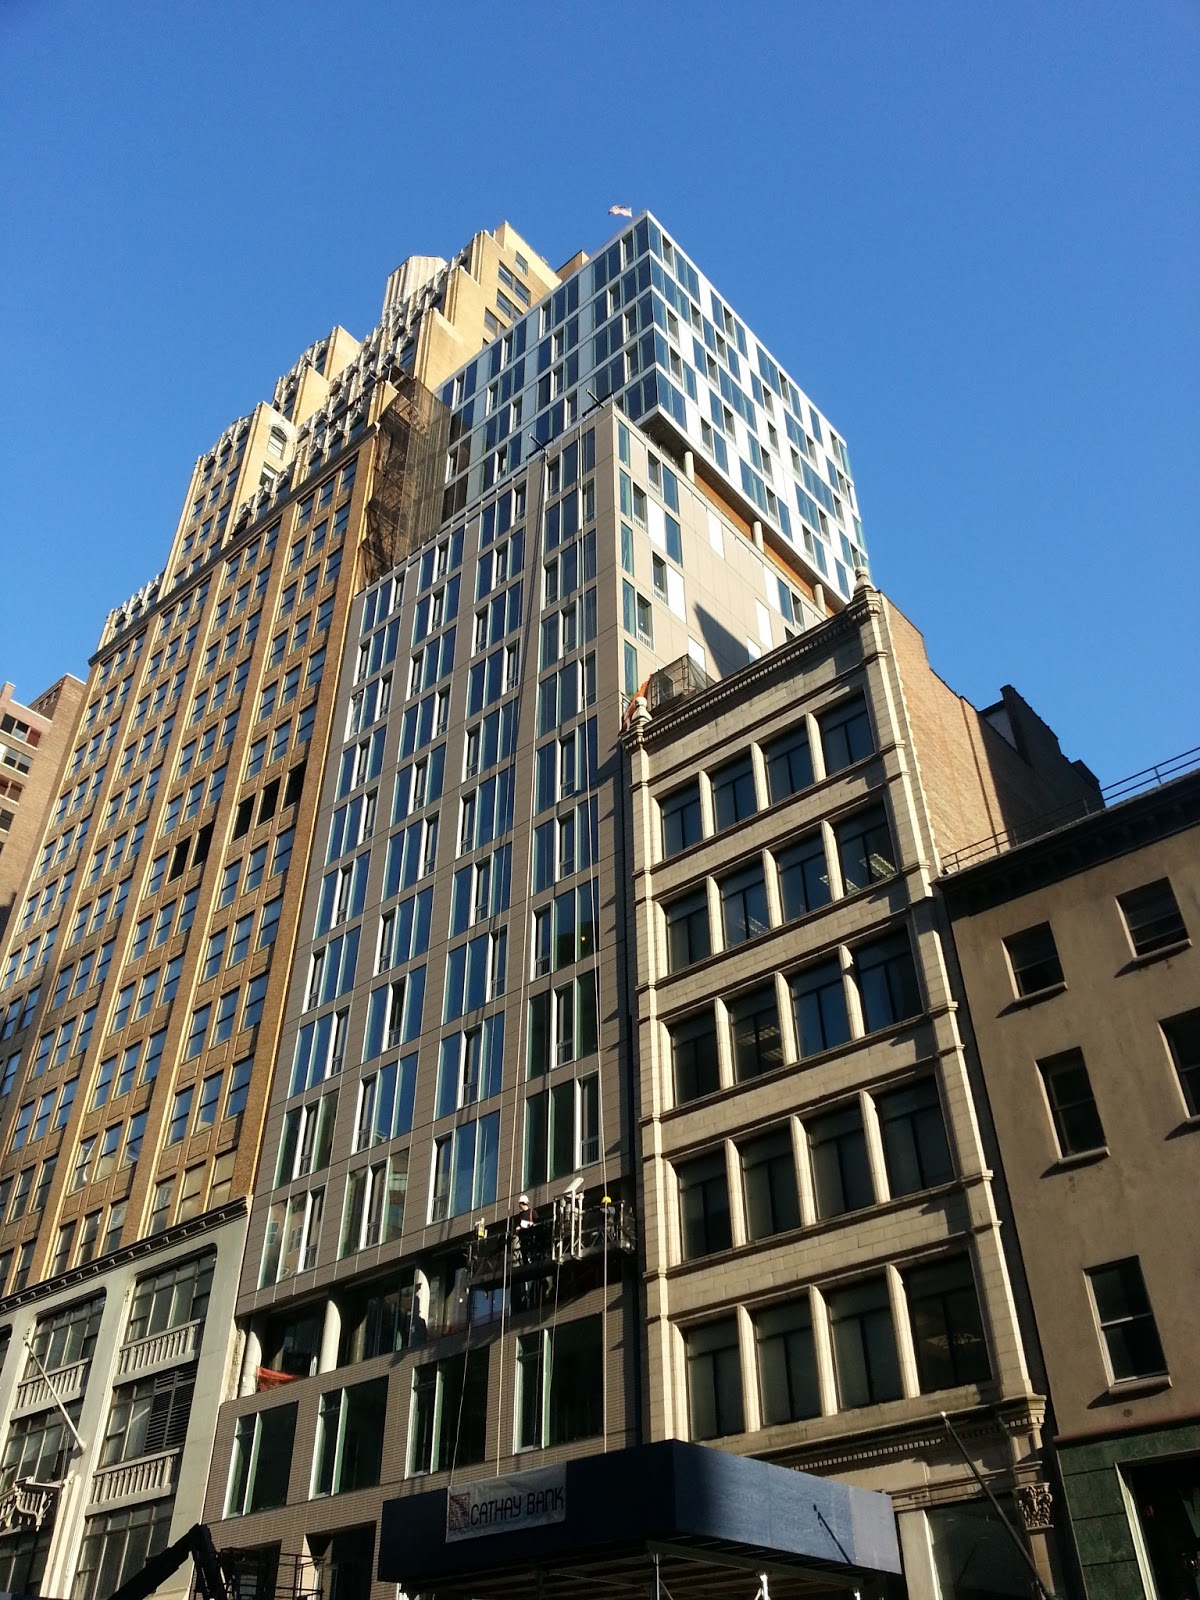 ny times highlighted the construction going on in the nomad neighborhood and 241 fifth avenue